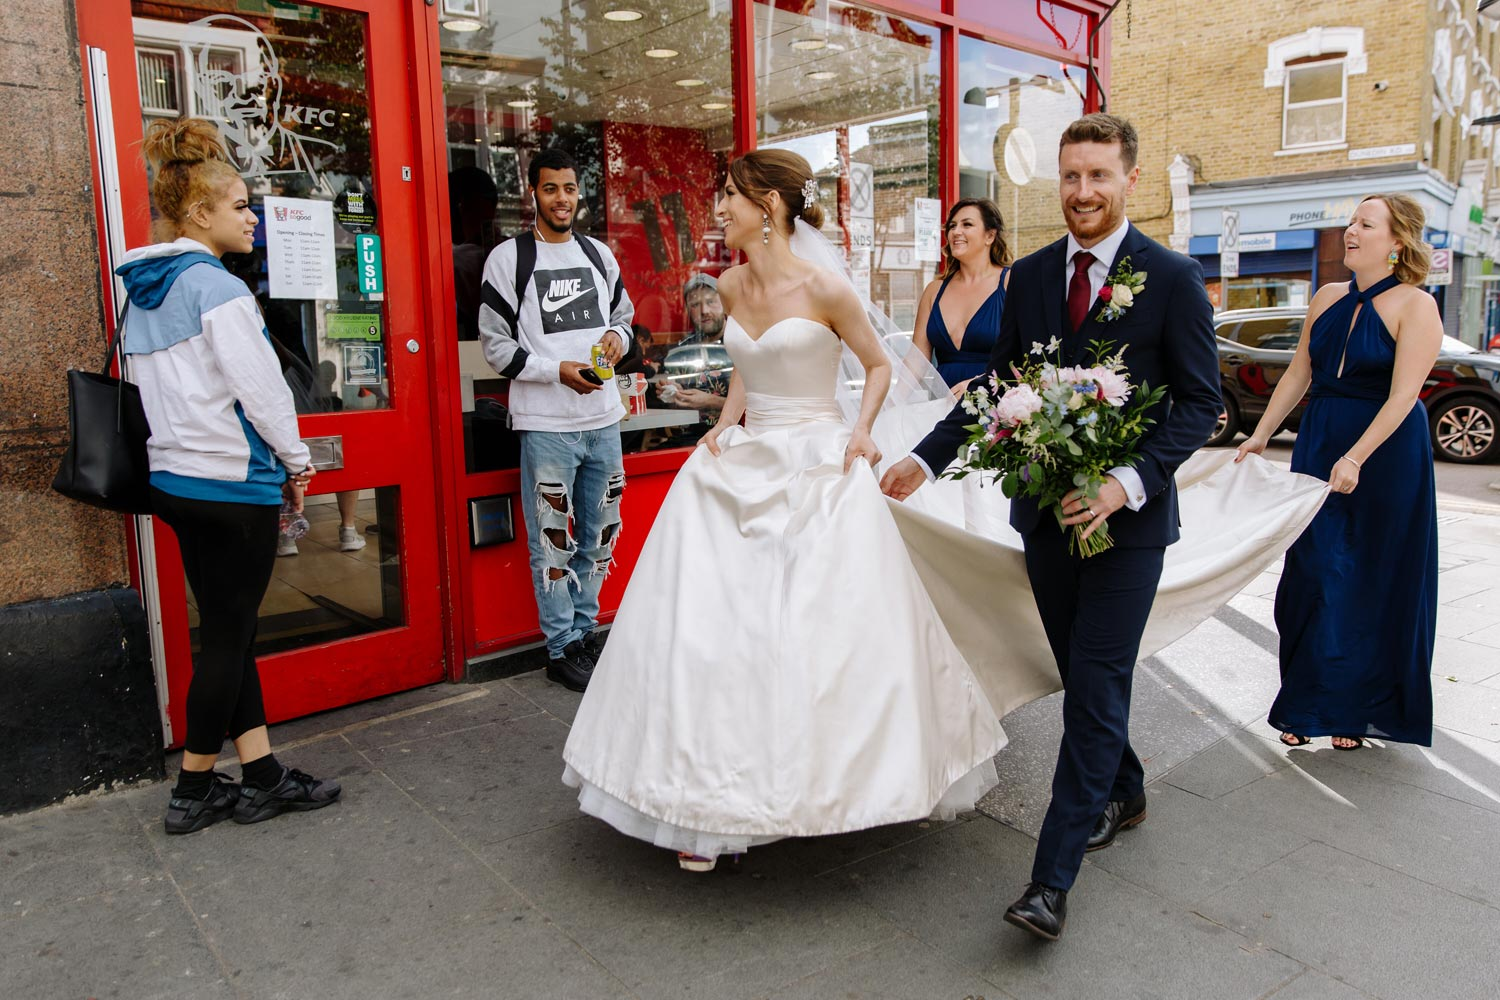 A bride and groom walk past a Pizza Hut in Leyton